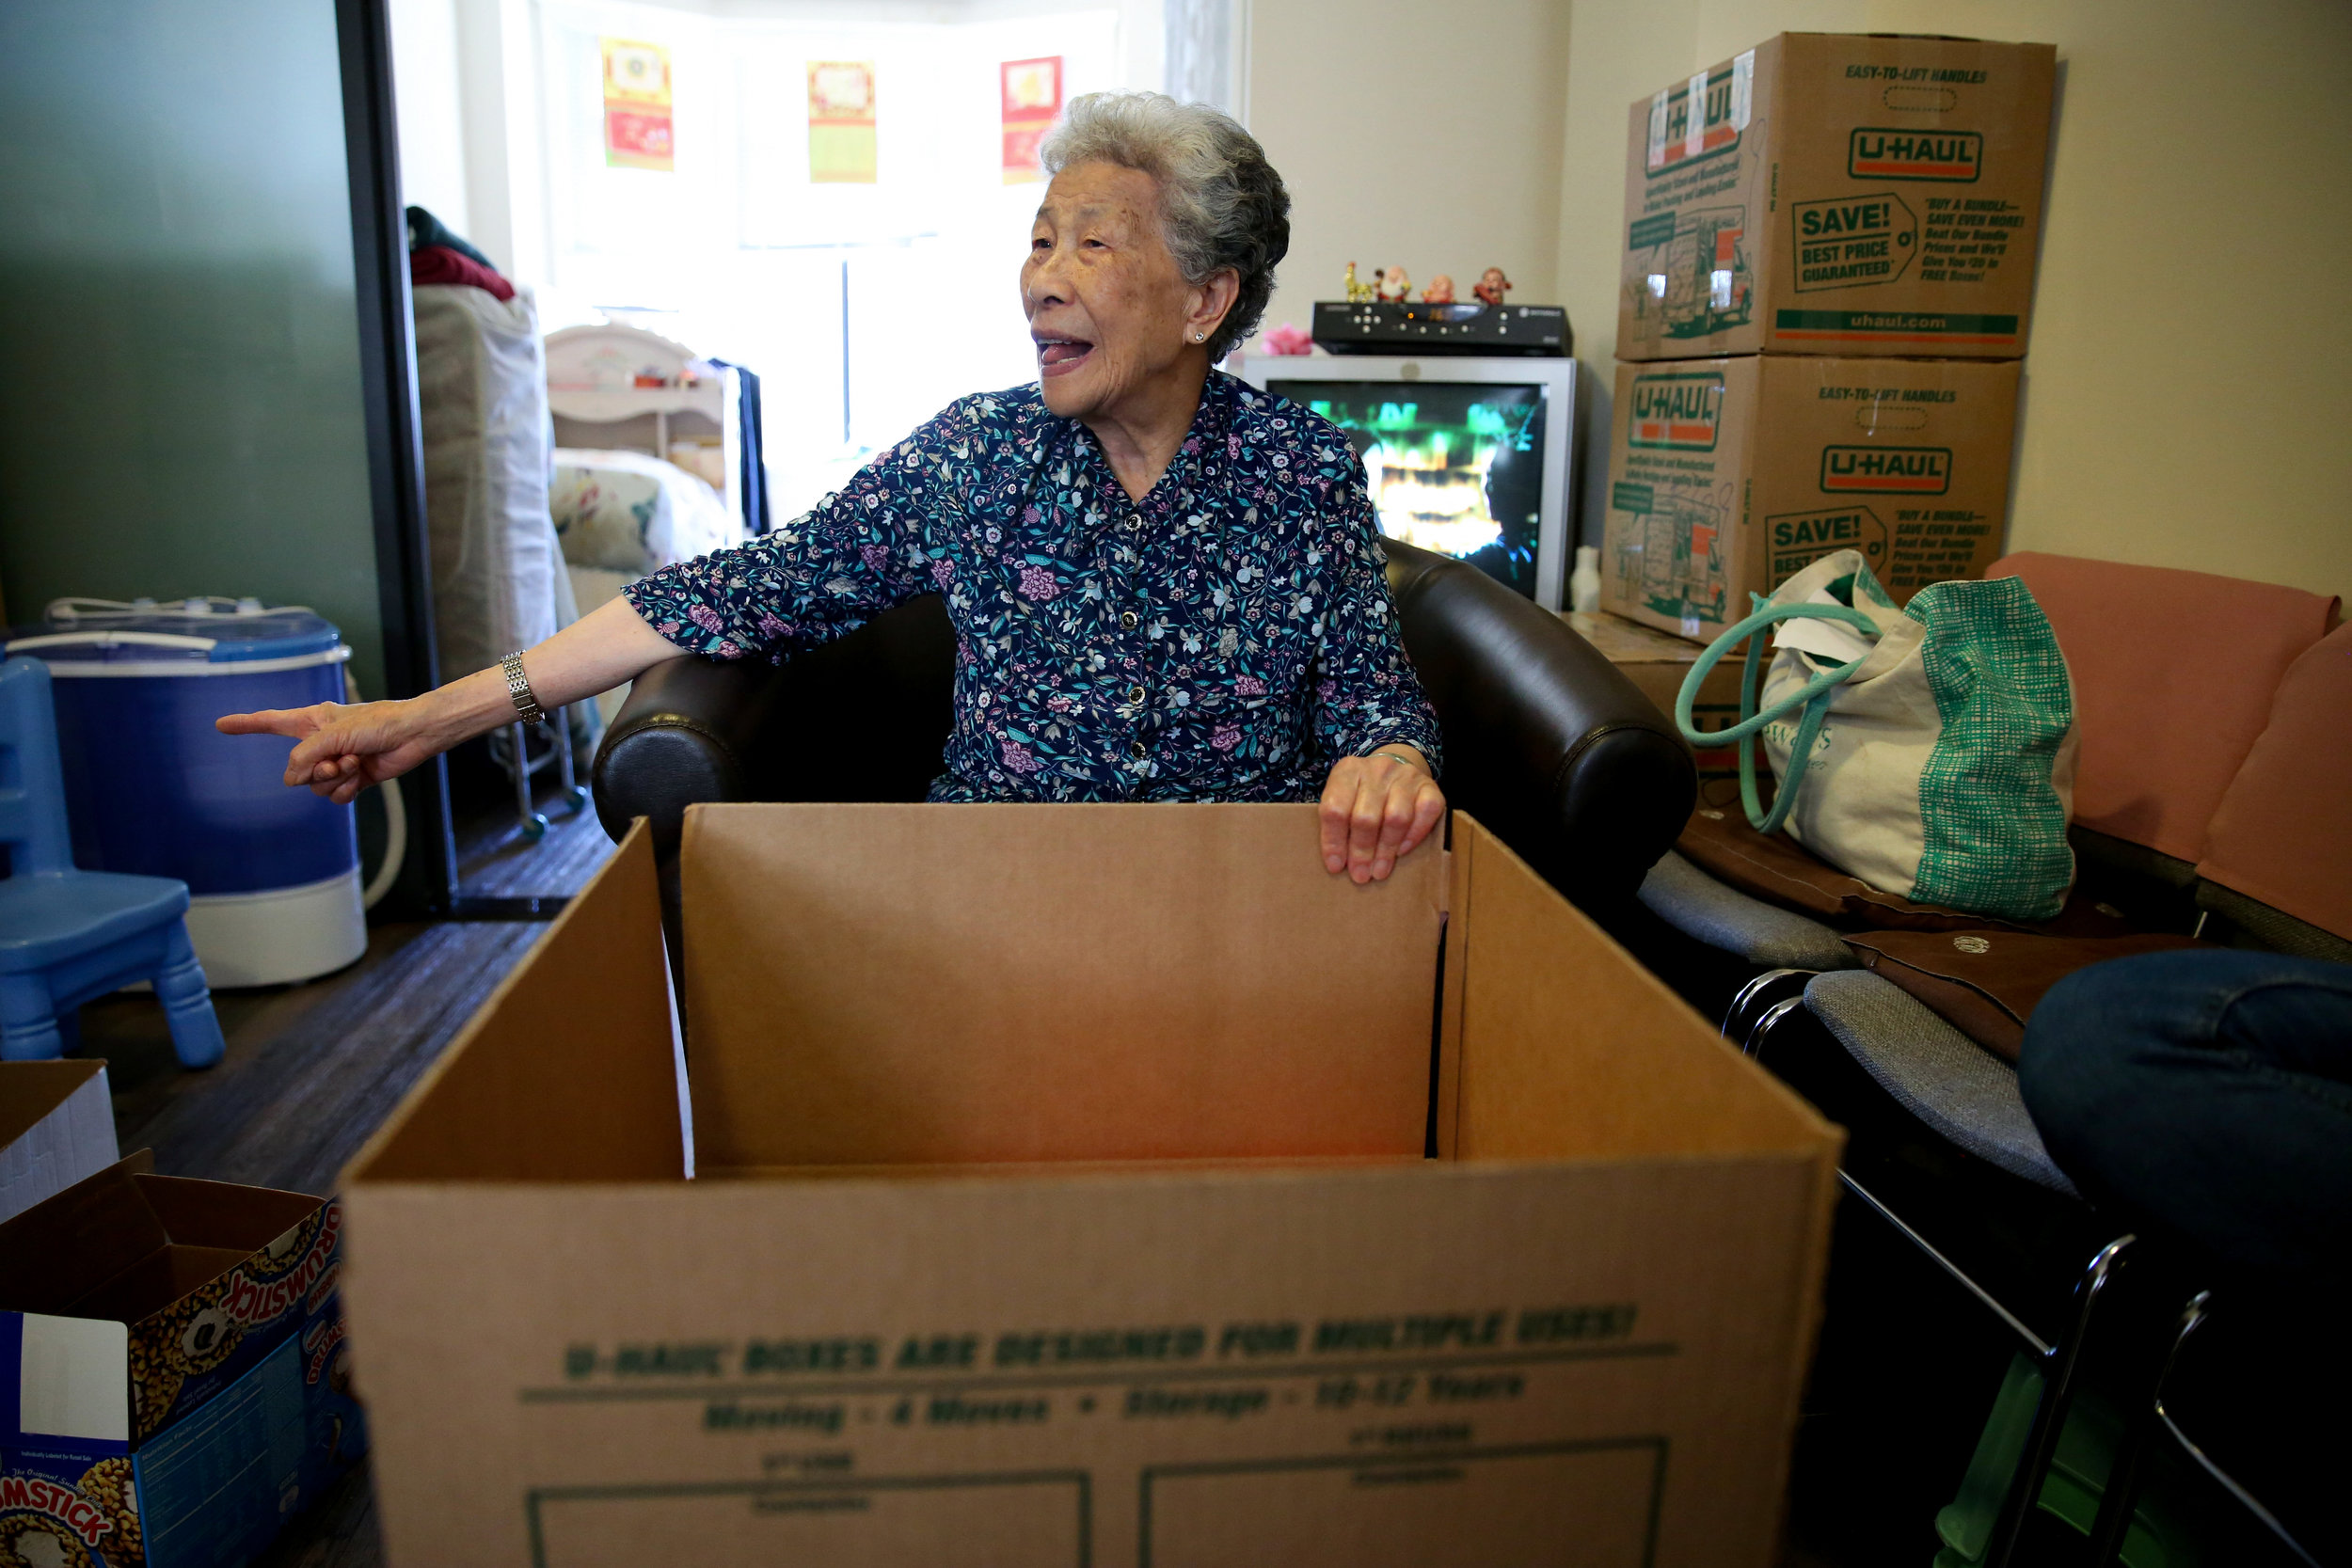 Coming Home: The 990 Pacific Relocation Story - For Chinatown Community Development Center